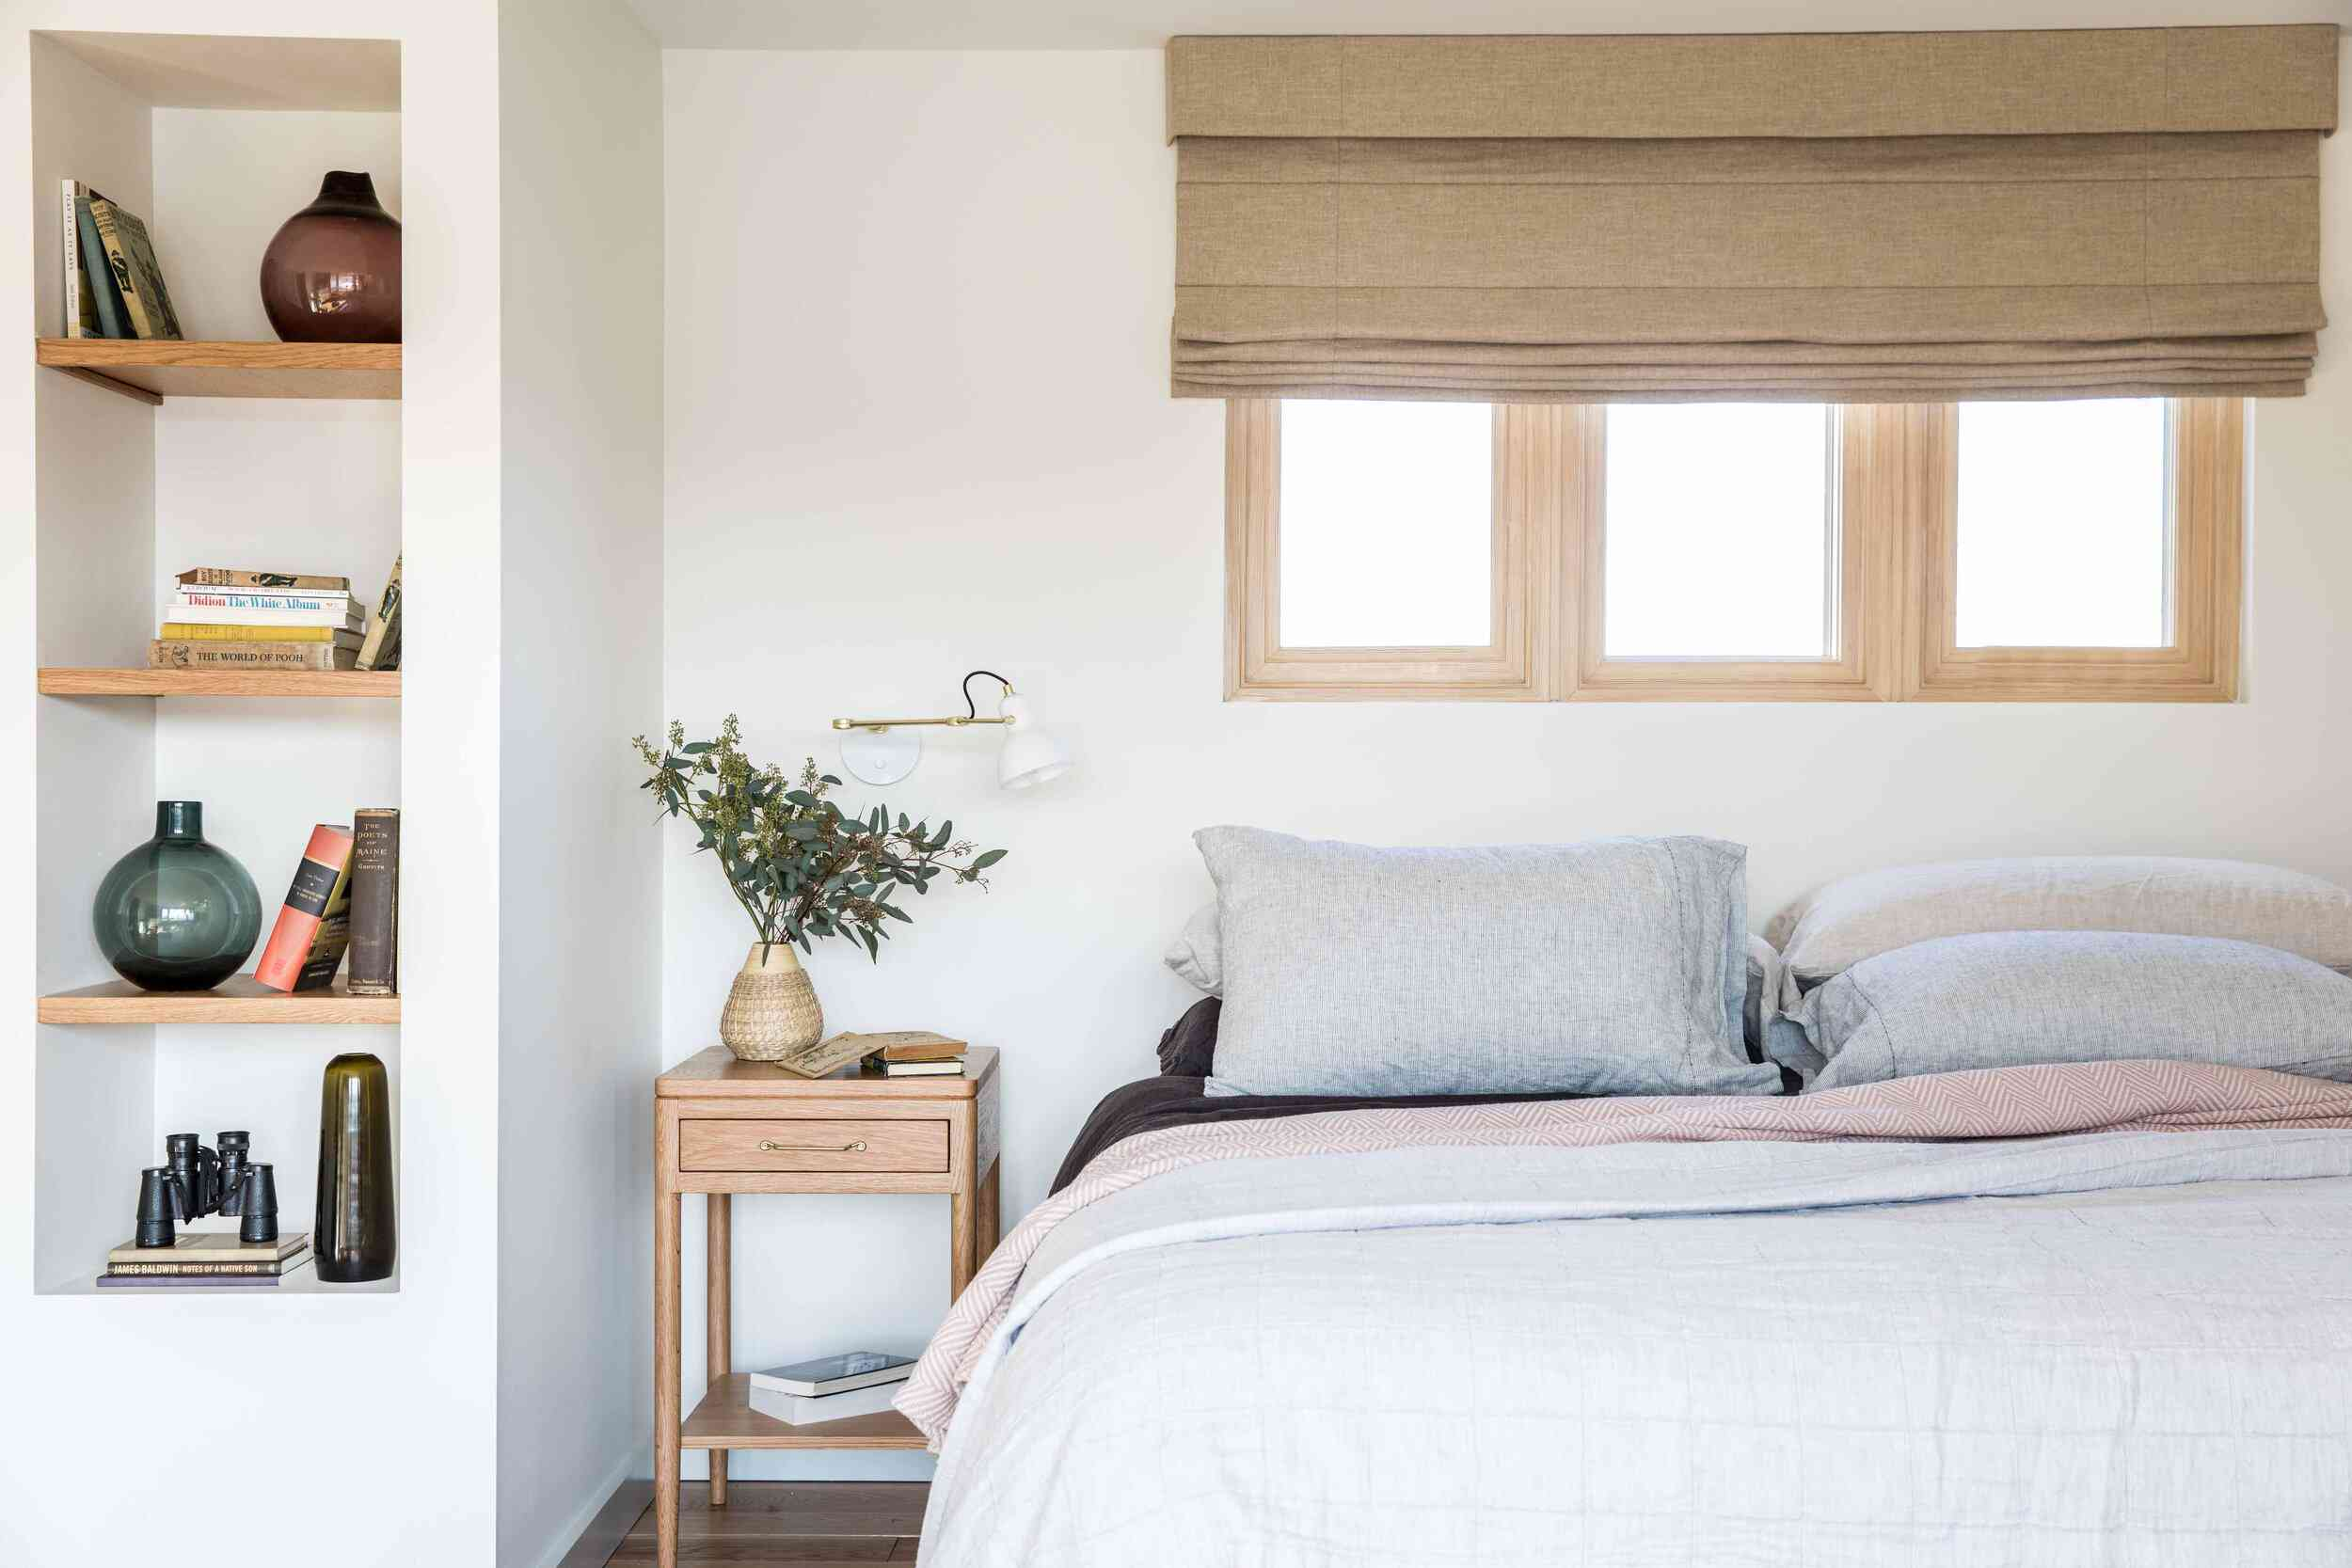 A bedroom with a small nightstand and several shelves that have been built-in to the wall